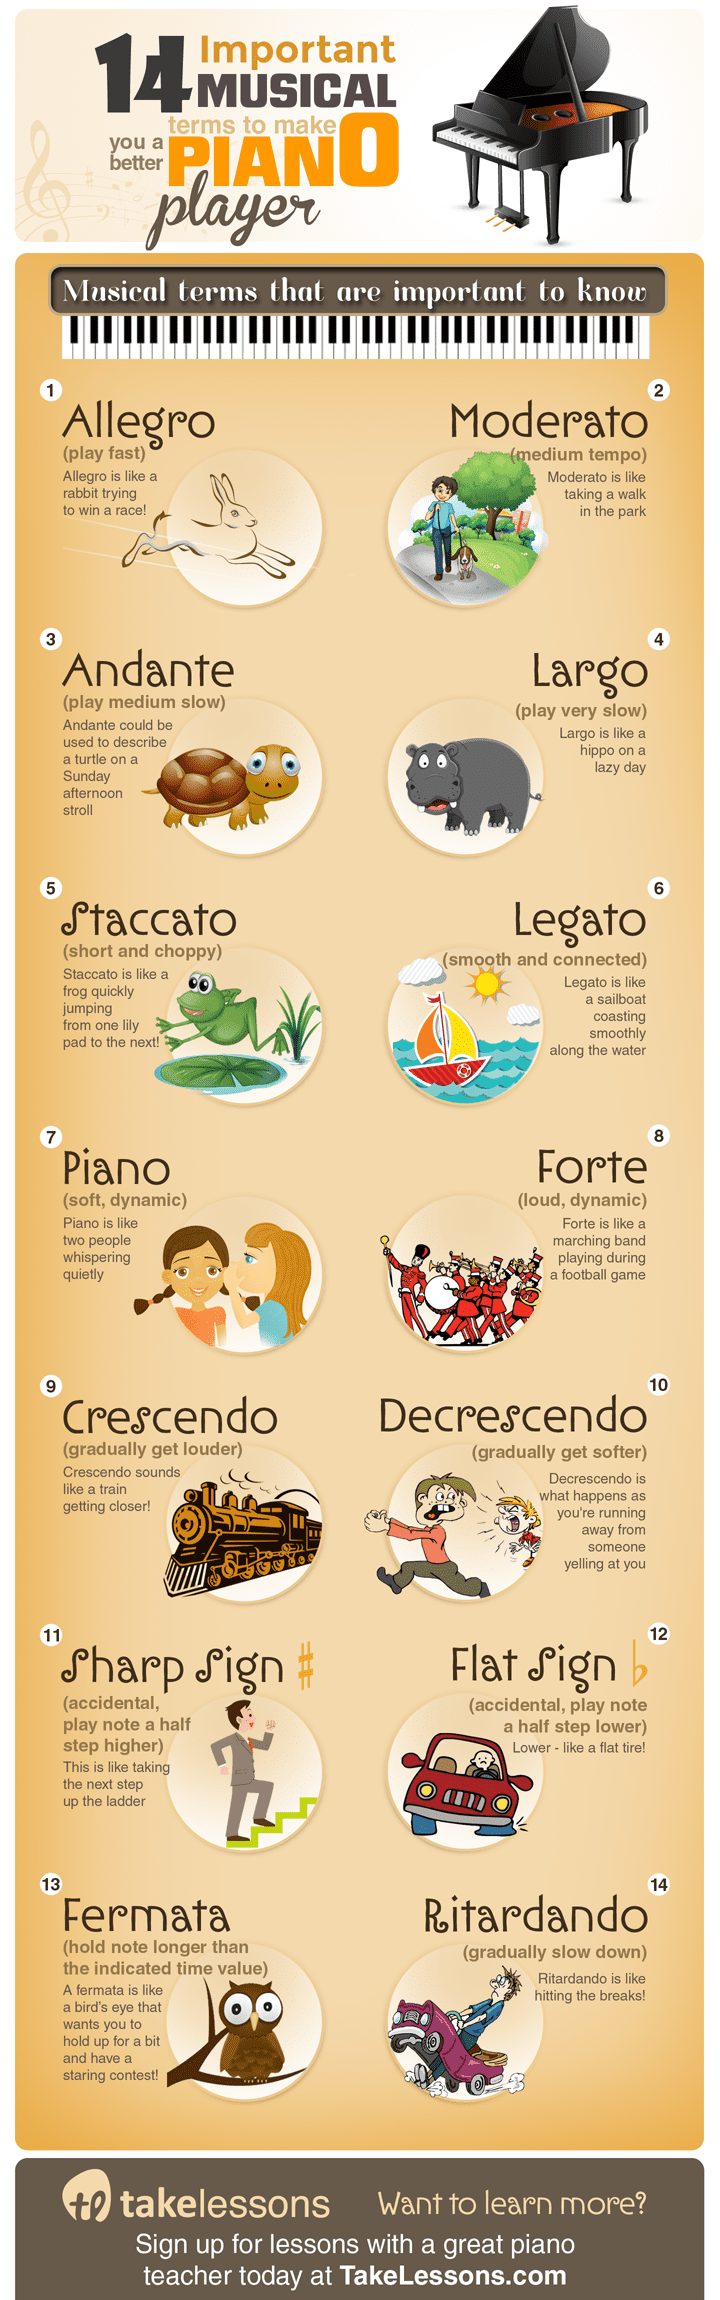 Infographic: 14 Common Musical Terms All Piano Players Need to Know